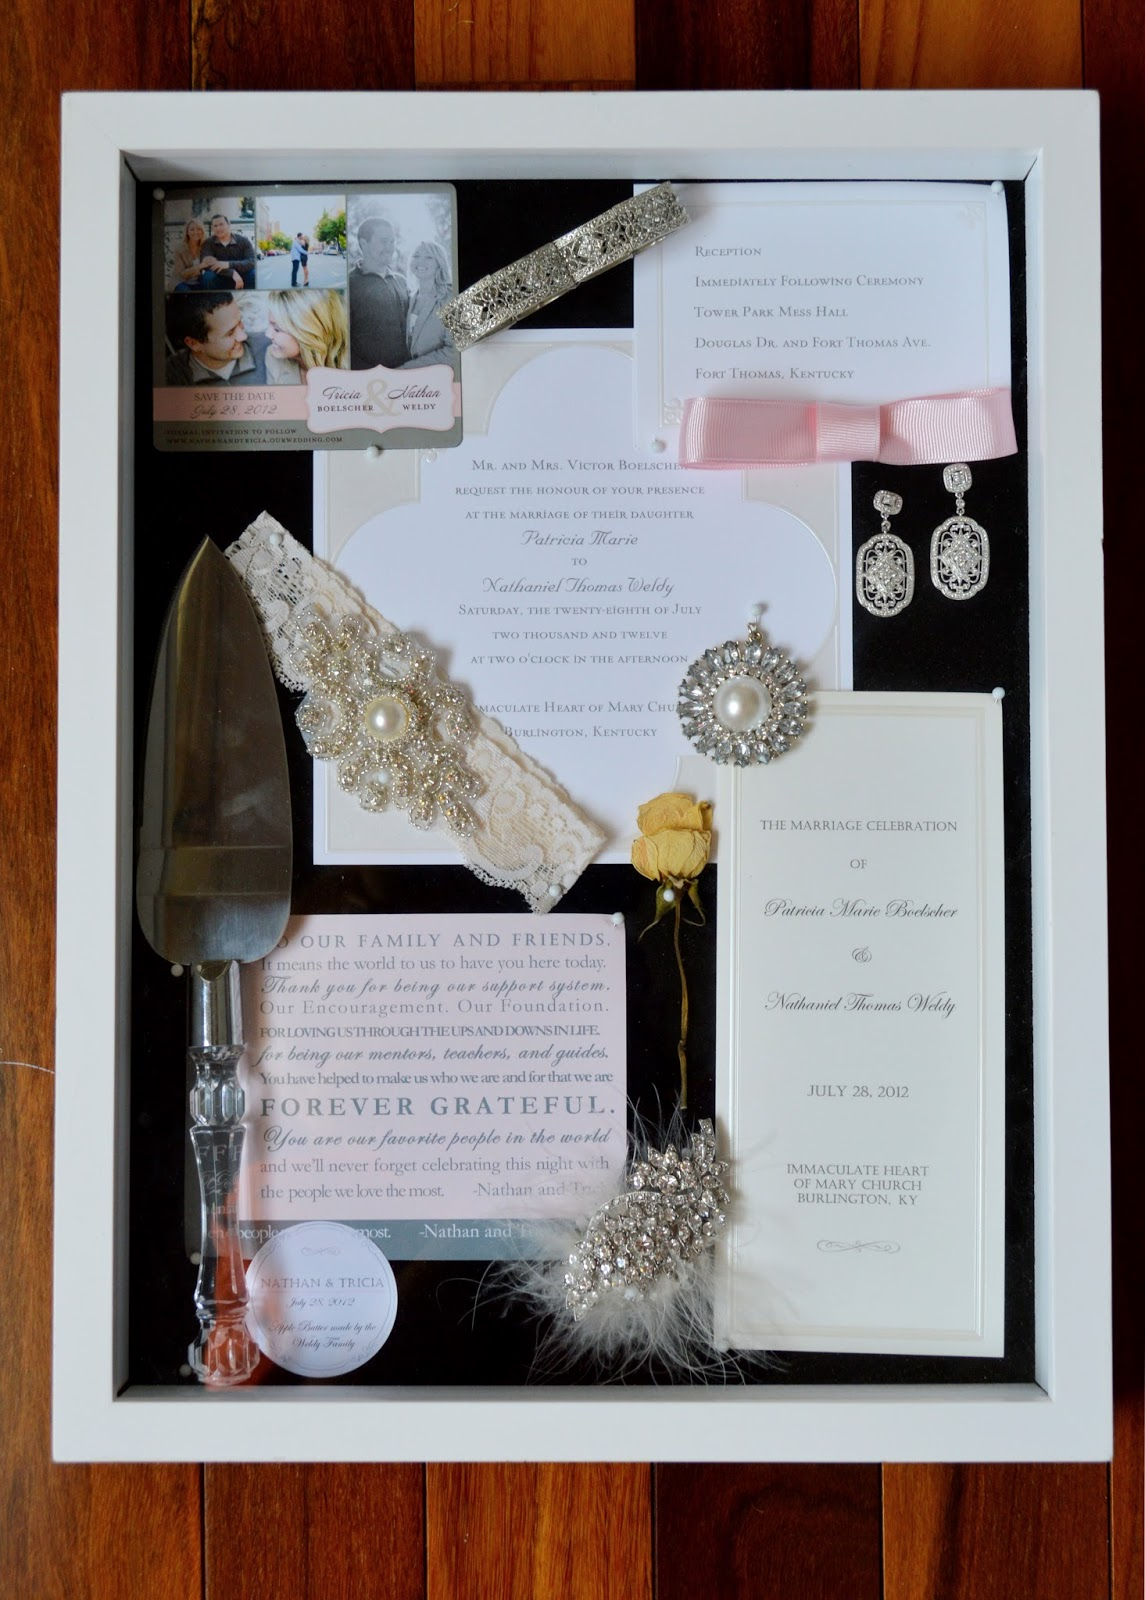 724 south house our big day displayed diy wedding shadow box. Black Bedroom Furniture Sets. Home Design Ideas